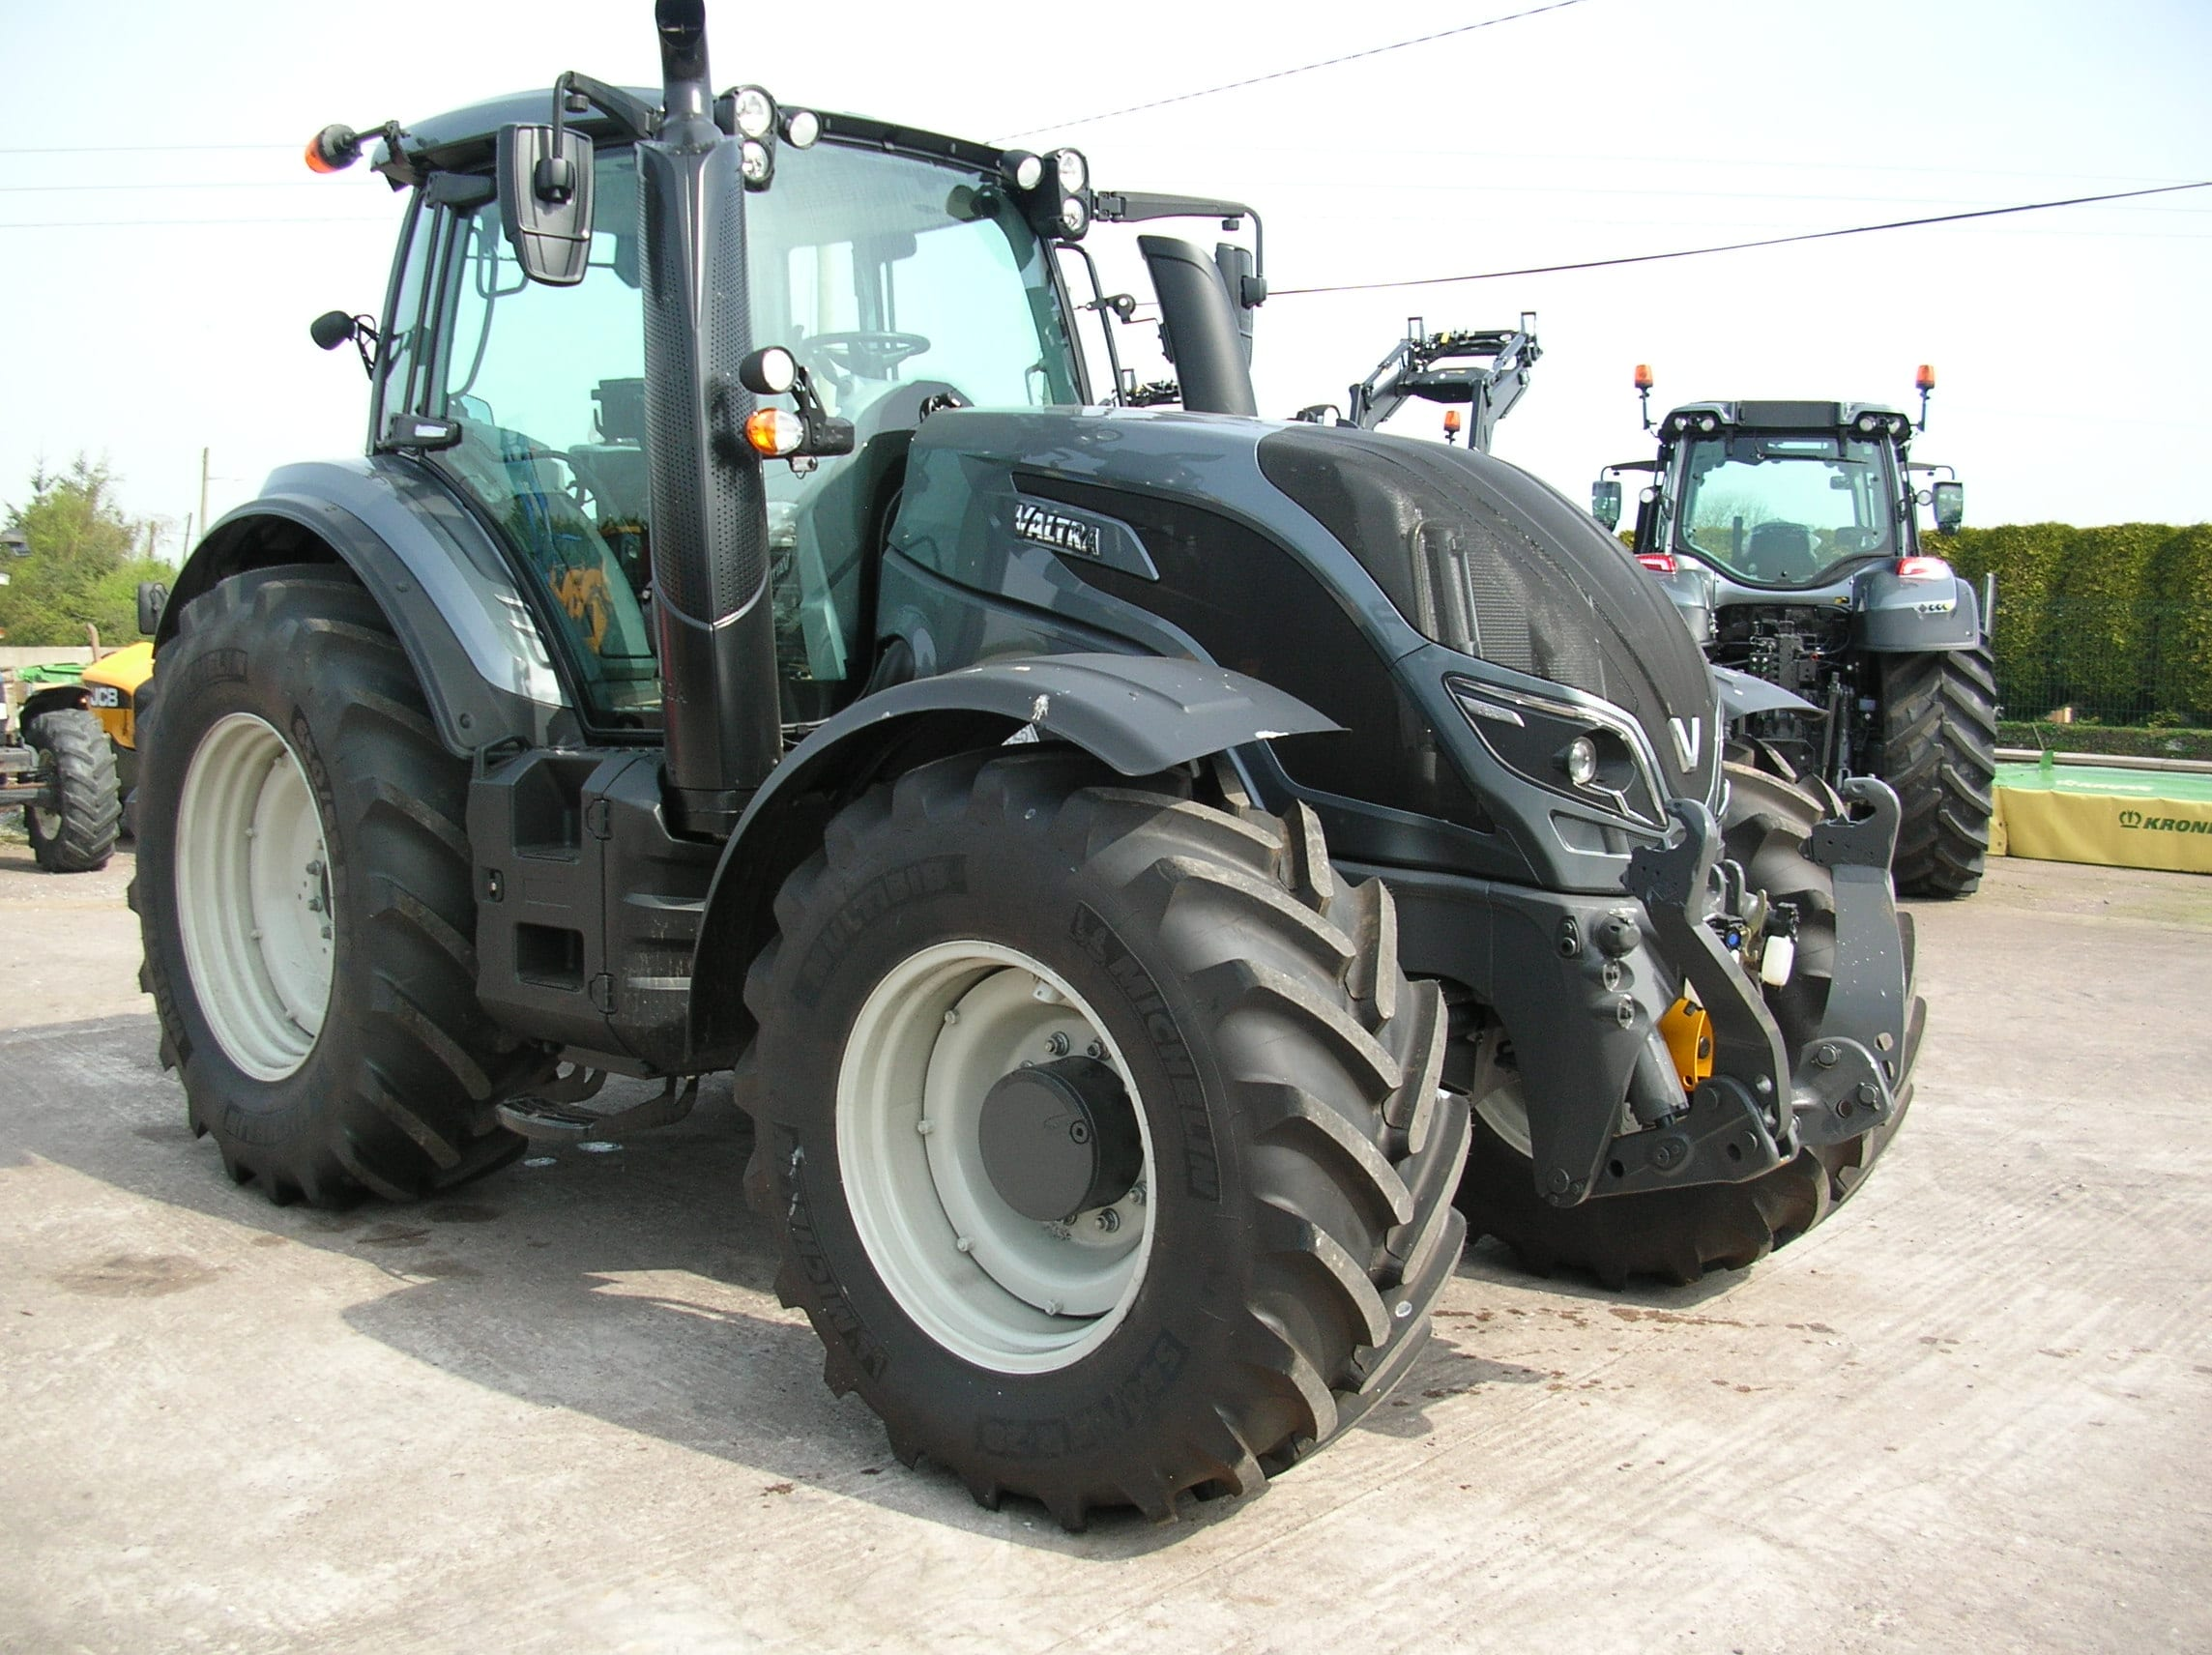 Quality Used Tractors for sale Cork Ireland | Valtra | New Holland on